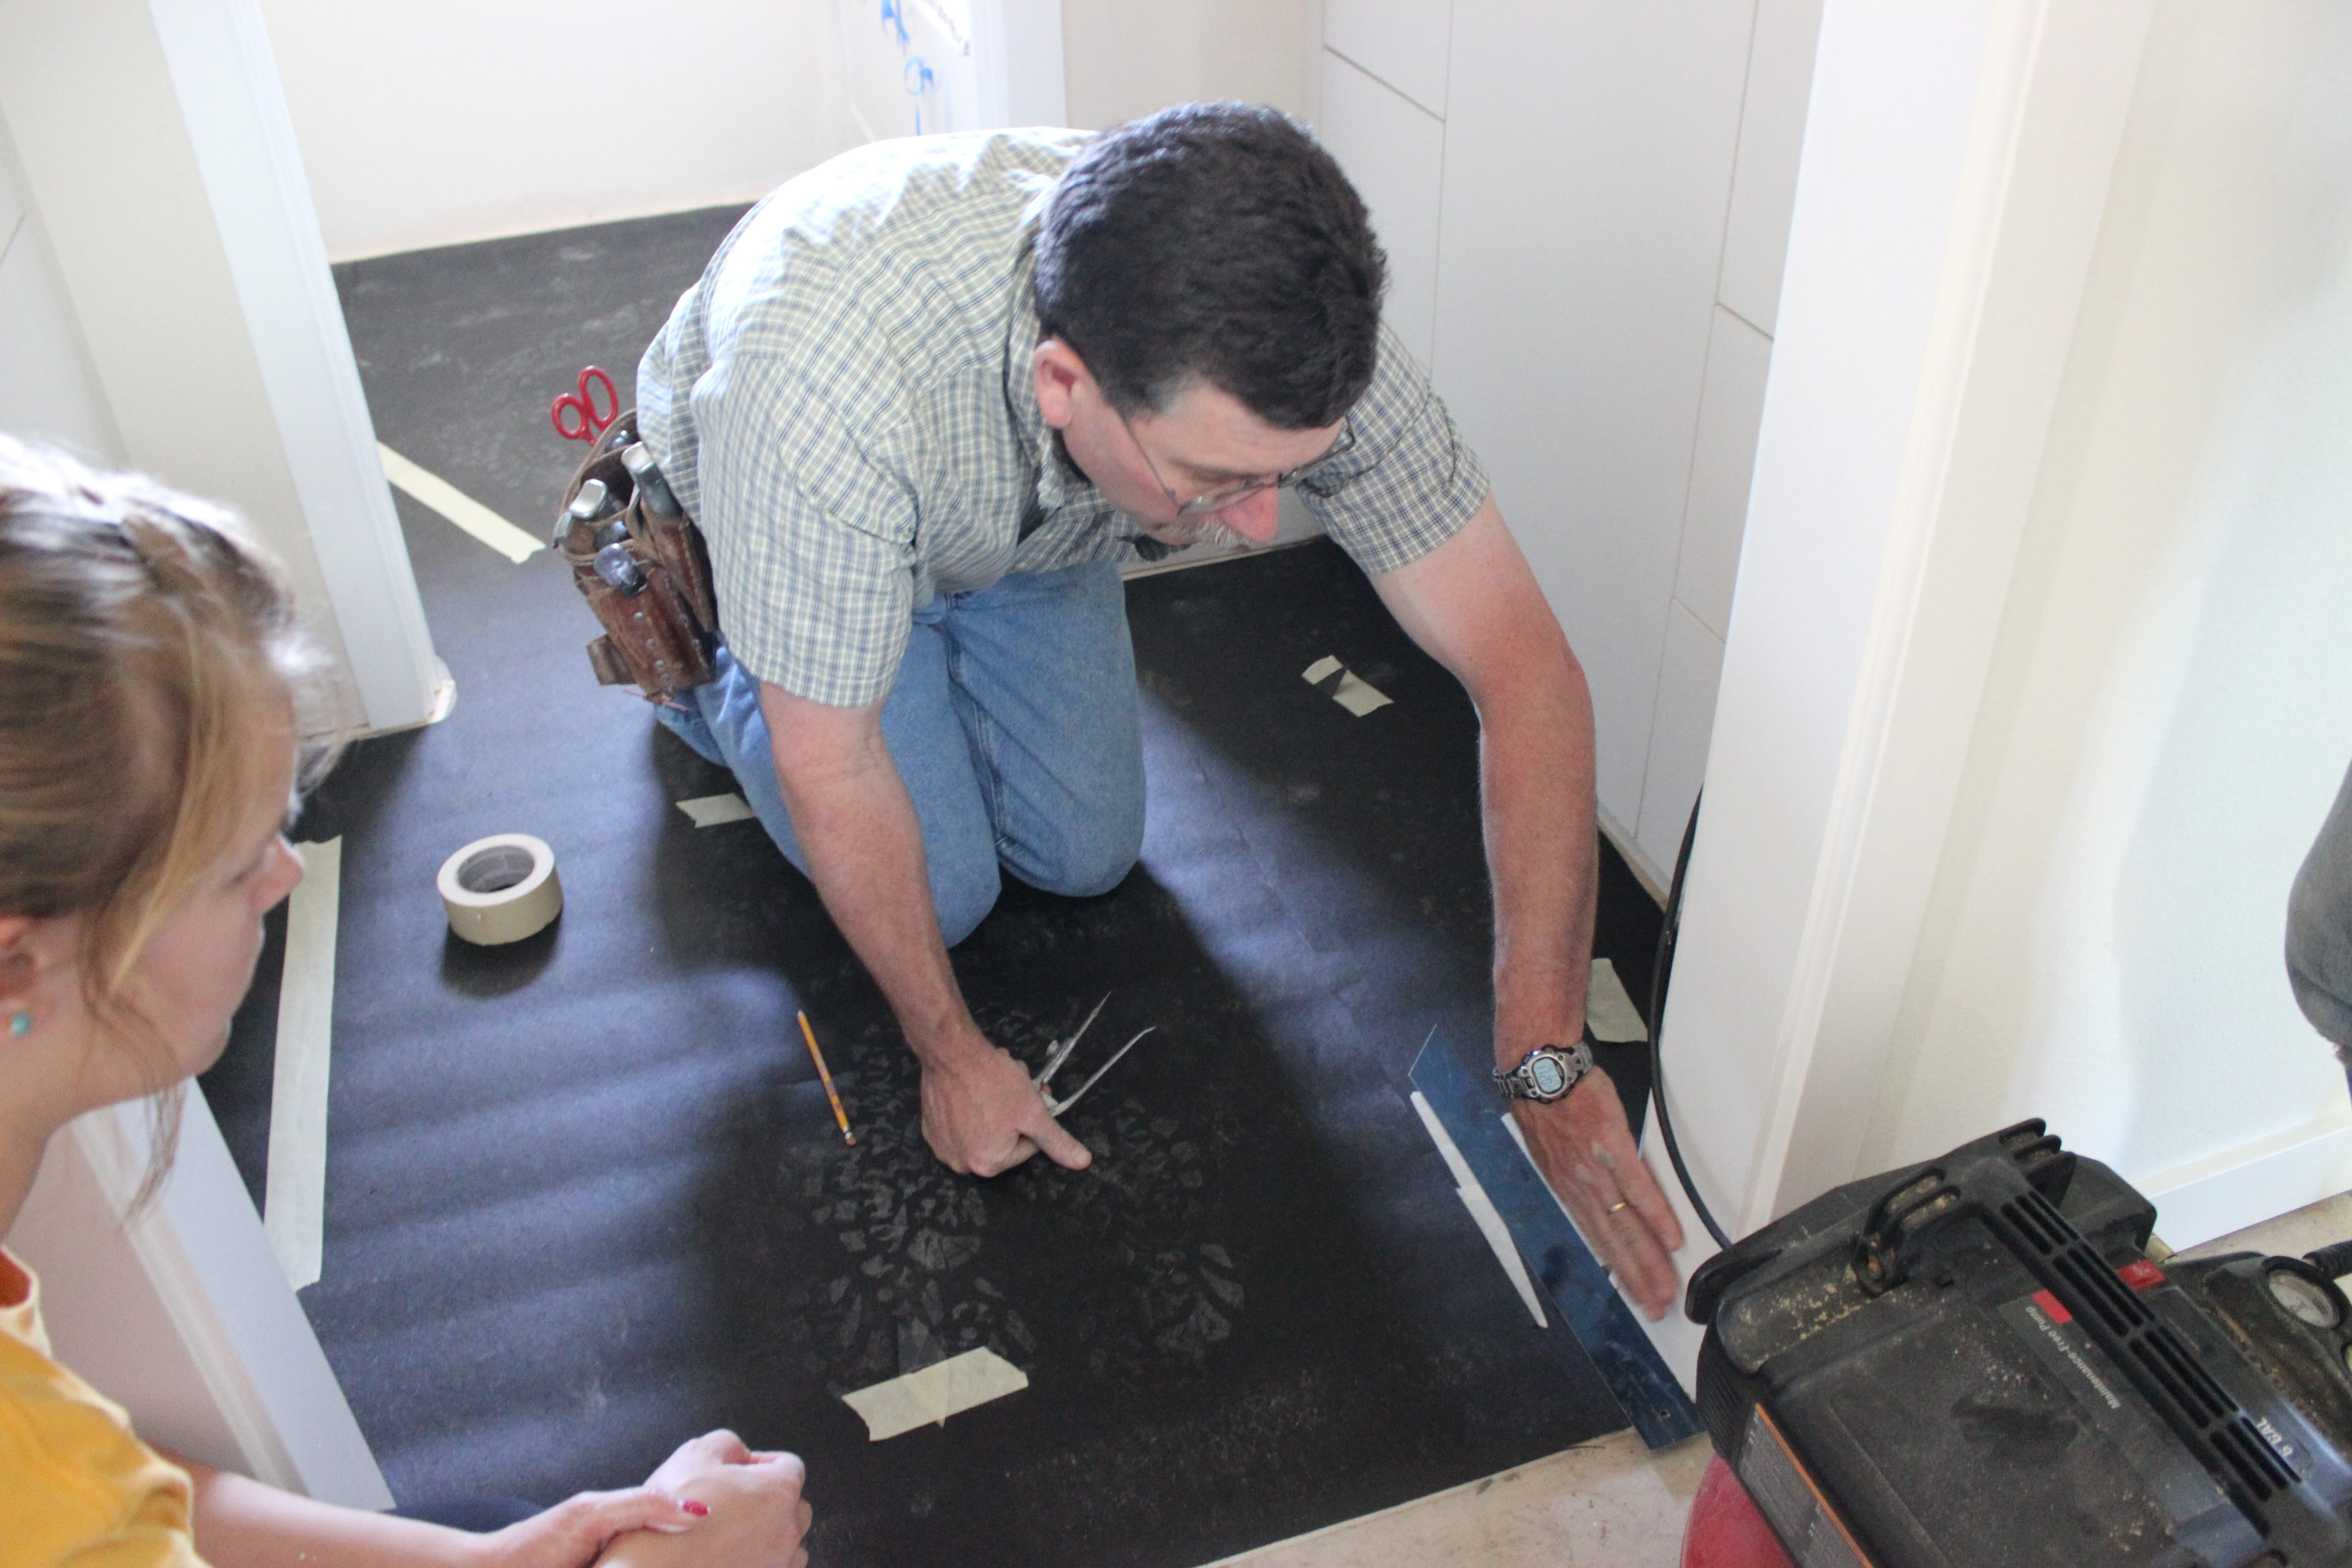 A specialist teaching us how to install linoleum